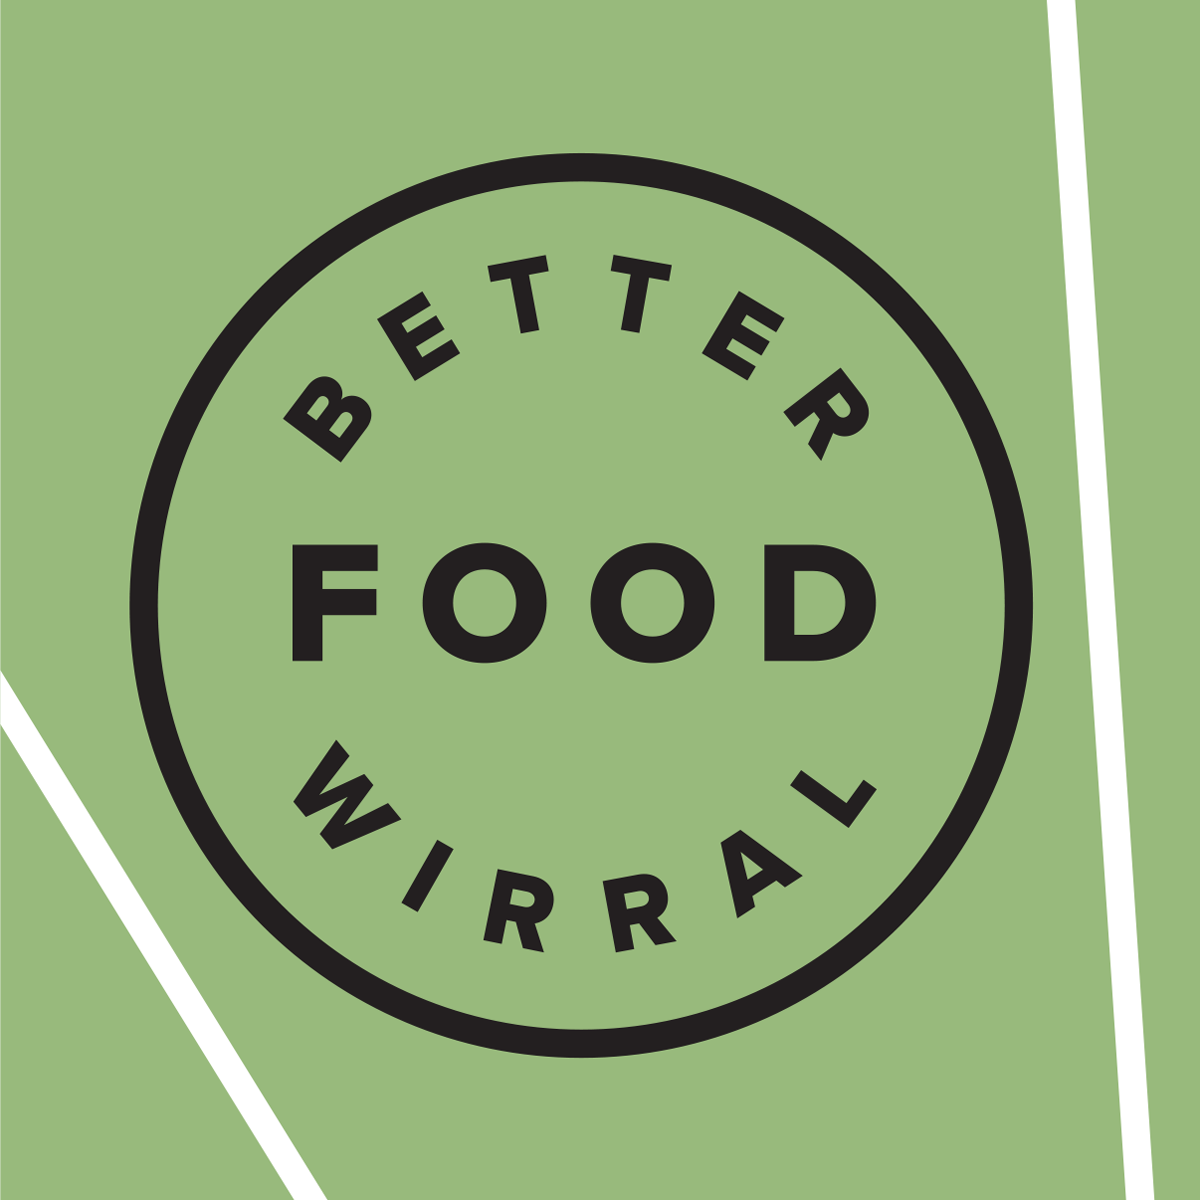 Better Food Wirral